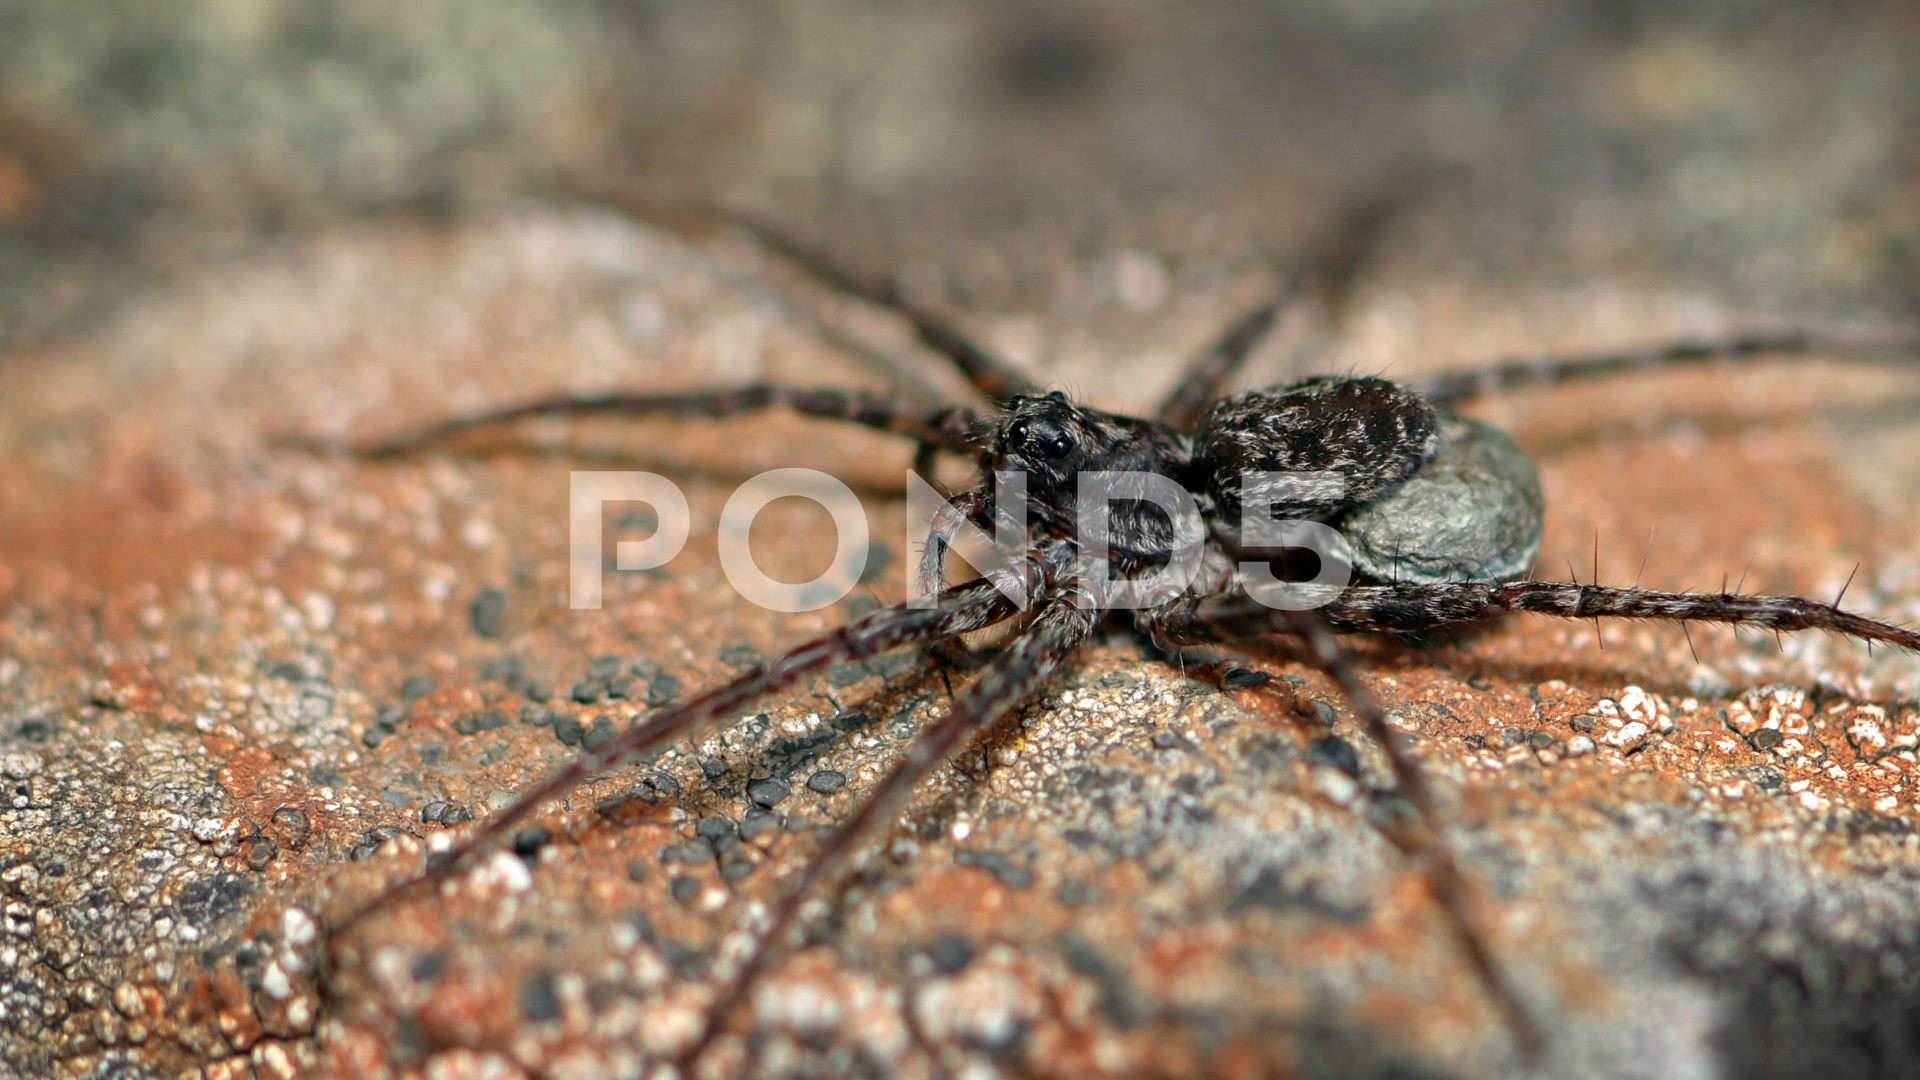 Closeup of a Large Hairy Spider on a Rock ~ Footage #71765488